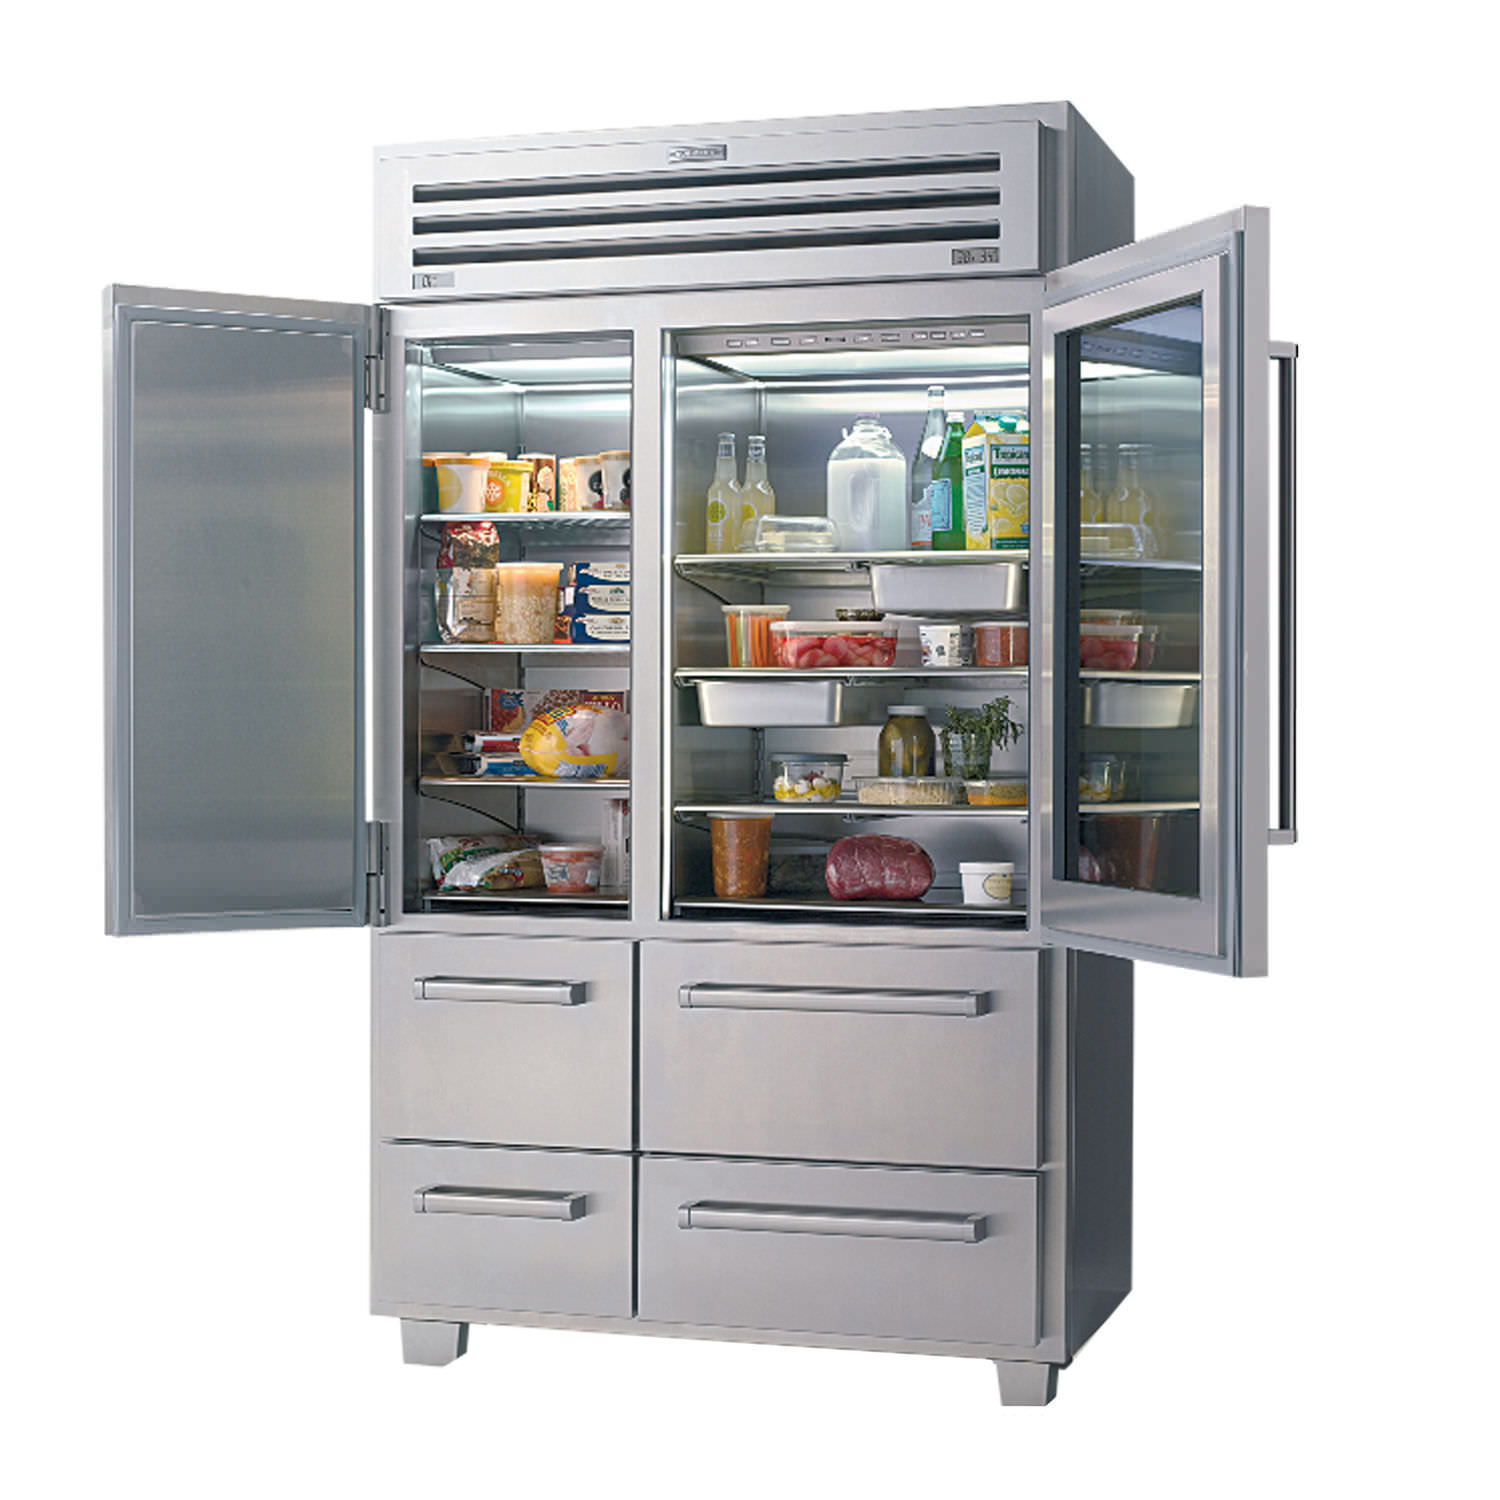 American Refrigerator Freezer With Drawer Gl Stainless Steel